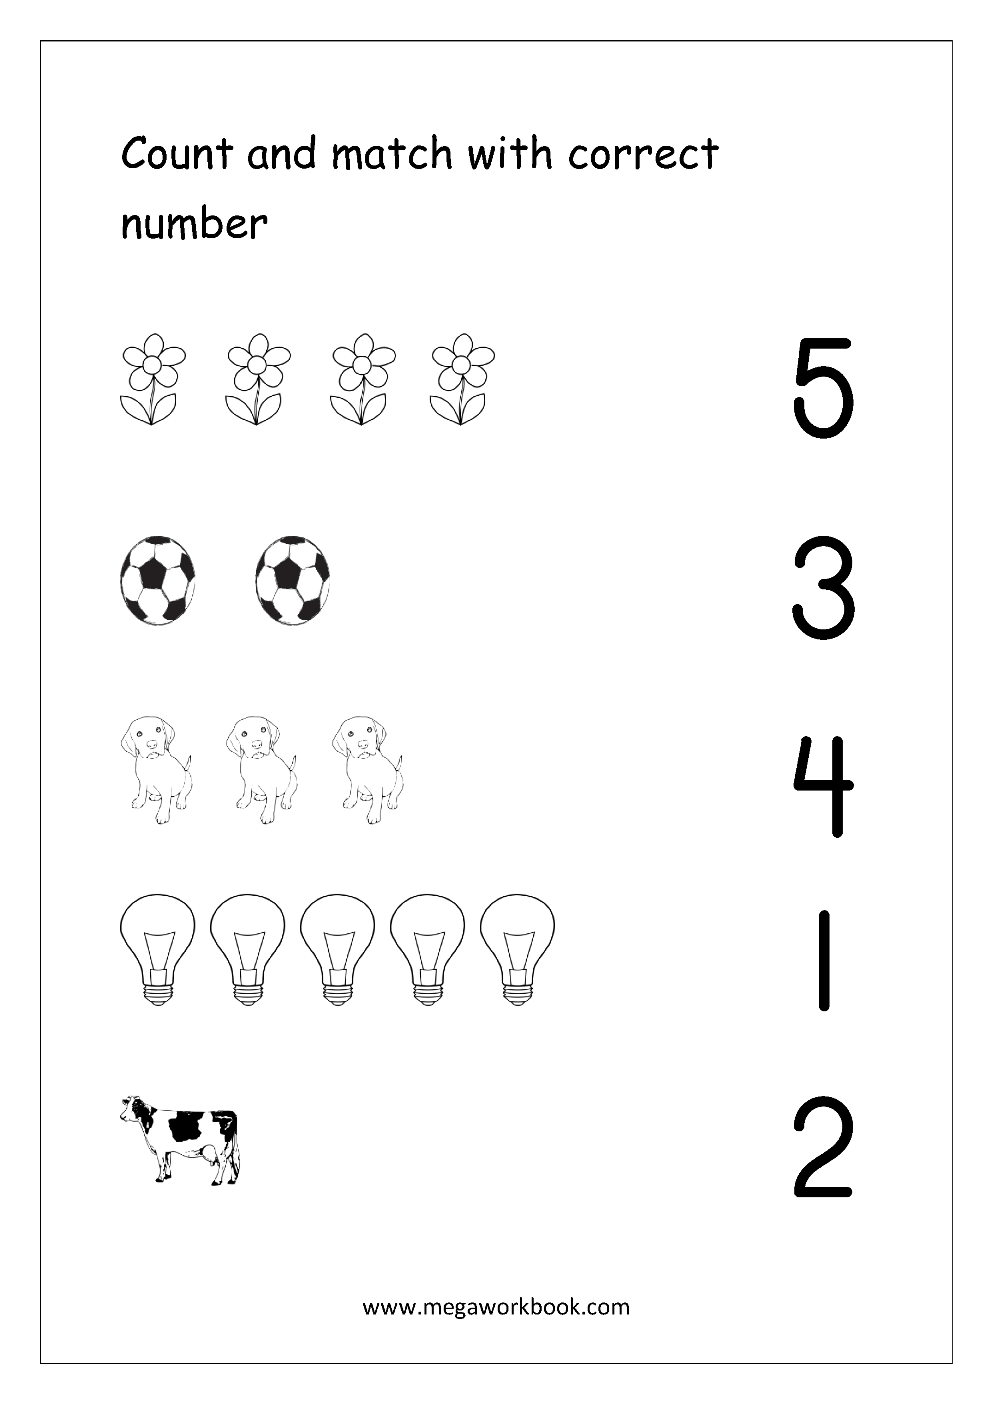 Free Printable Number Matching Worksheets For Kindergarten